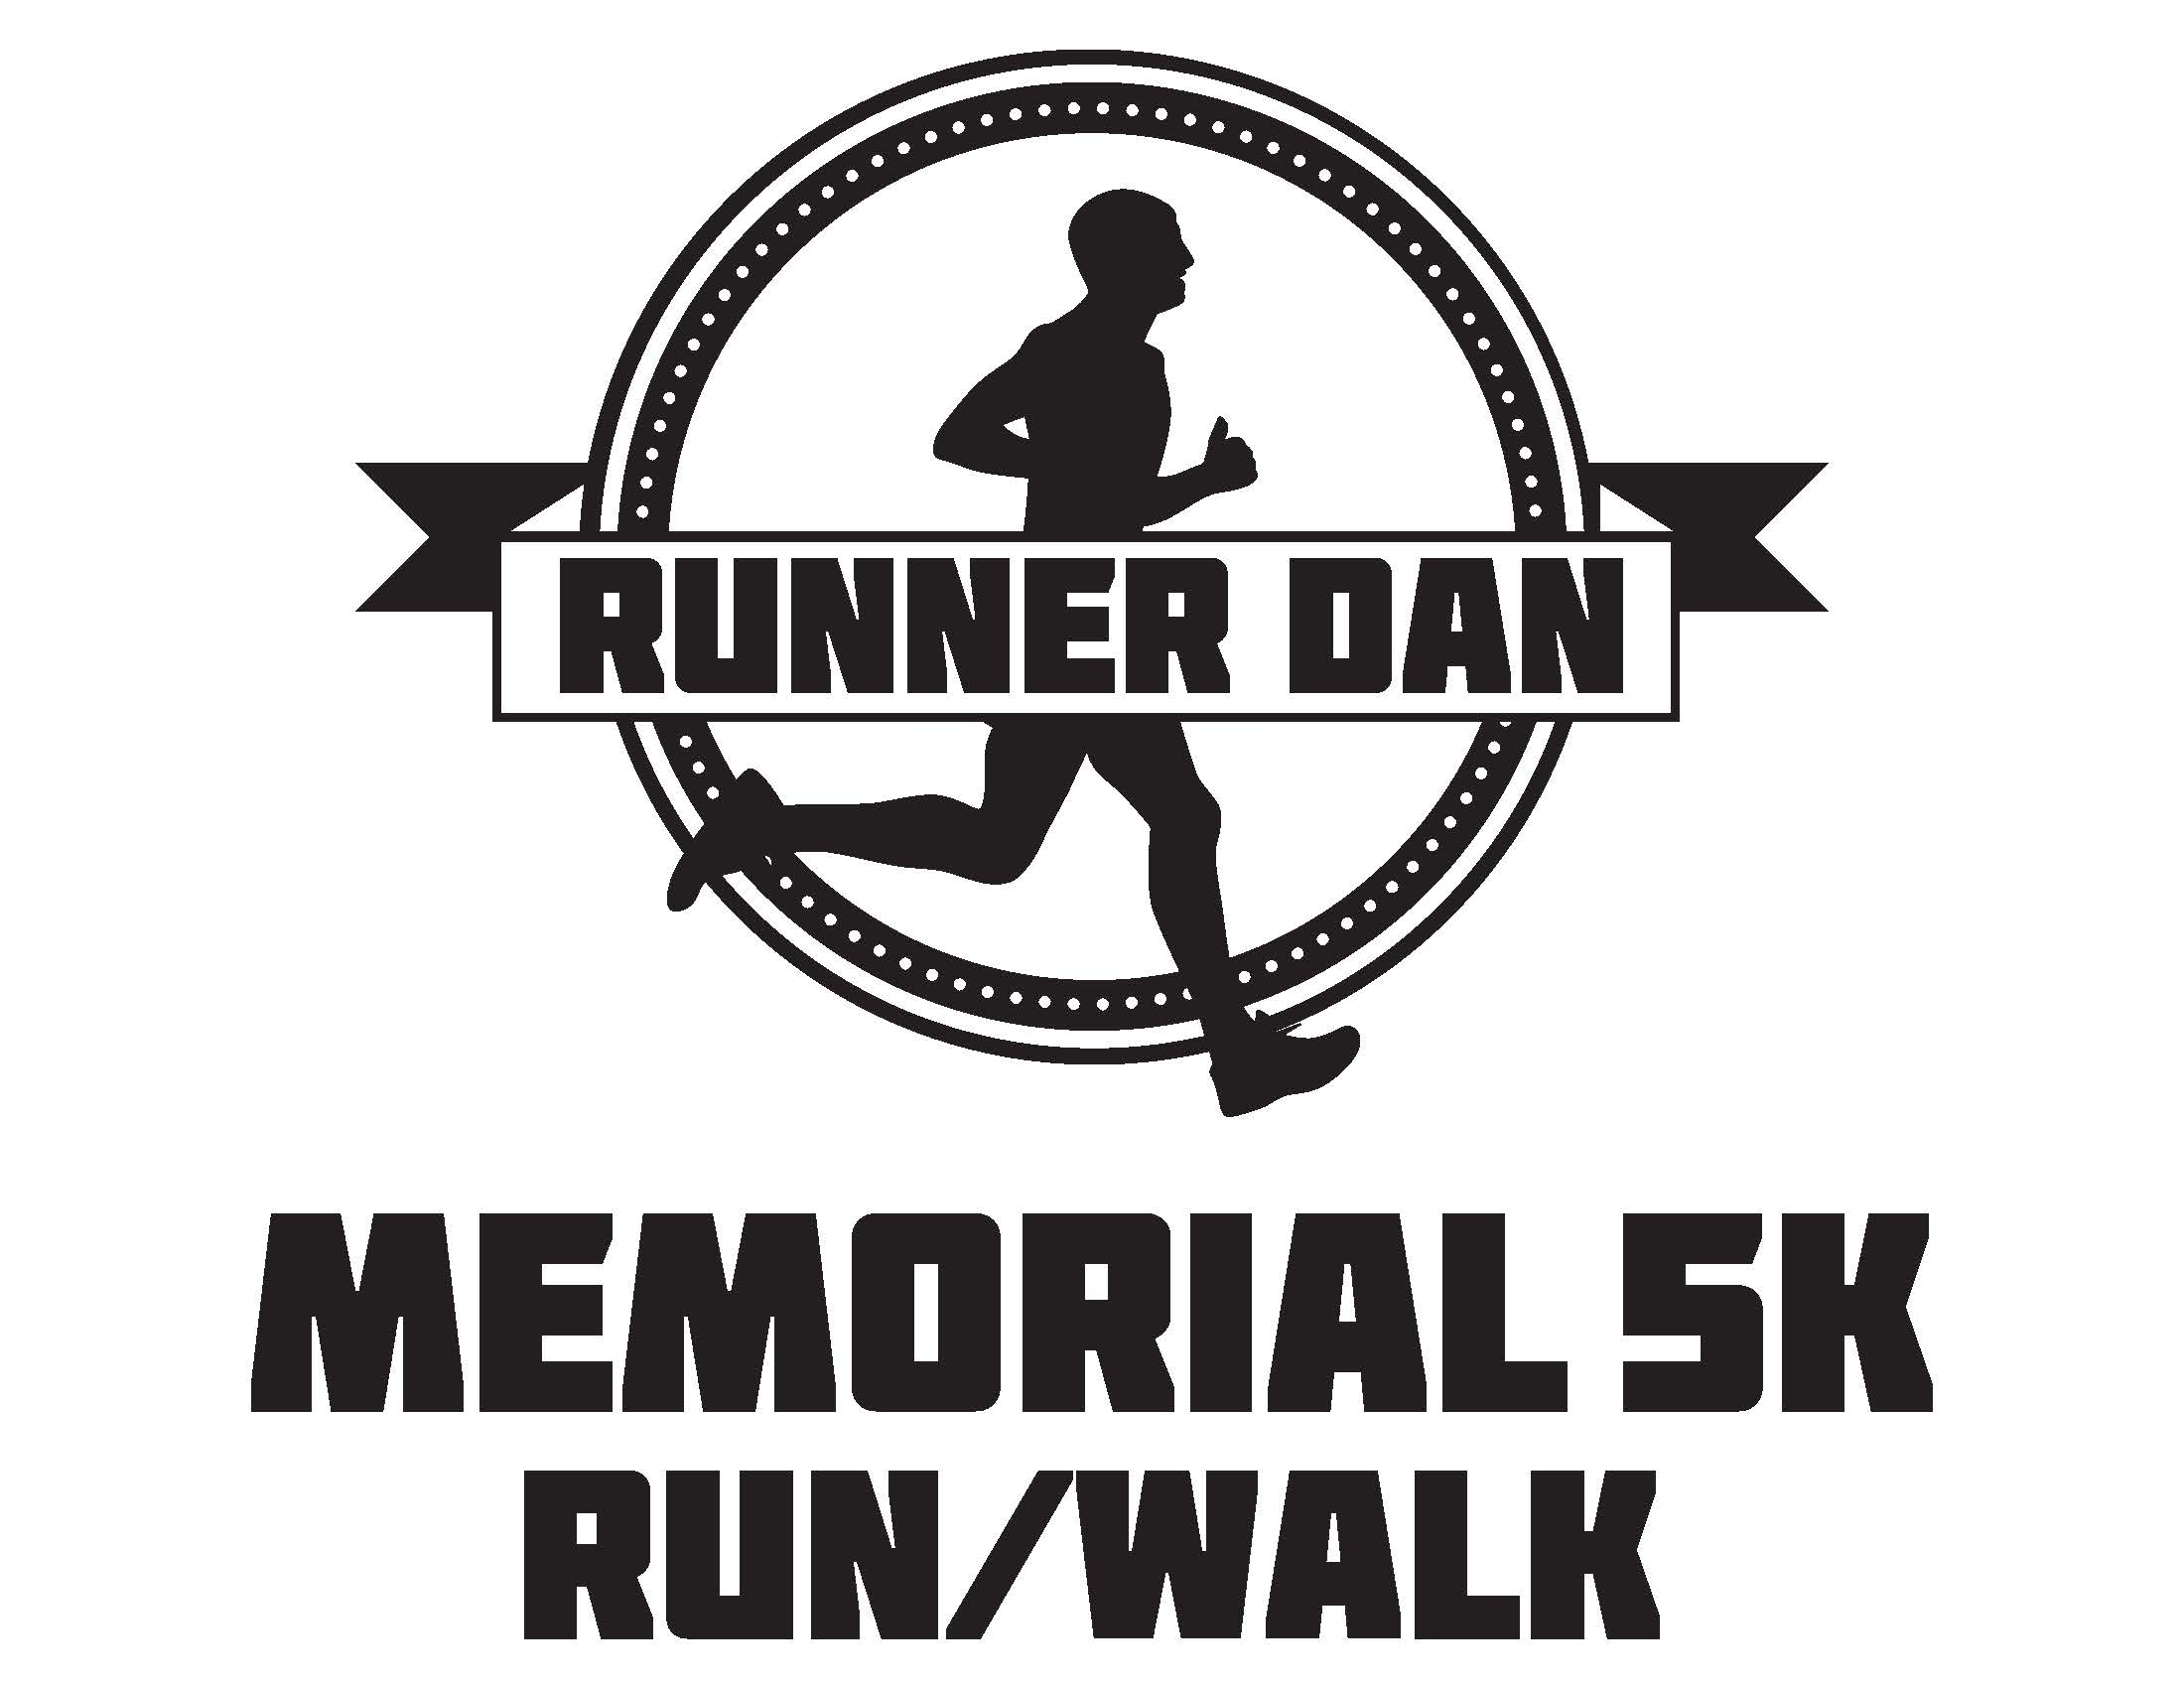 2nd Annual Runner Dan Memorial 5K Run/Walk